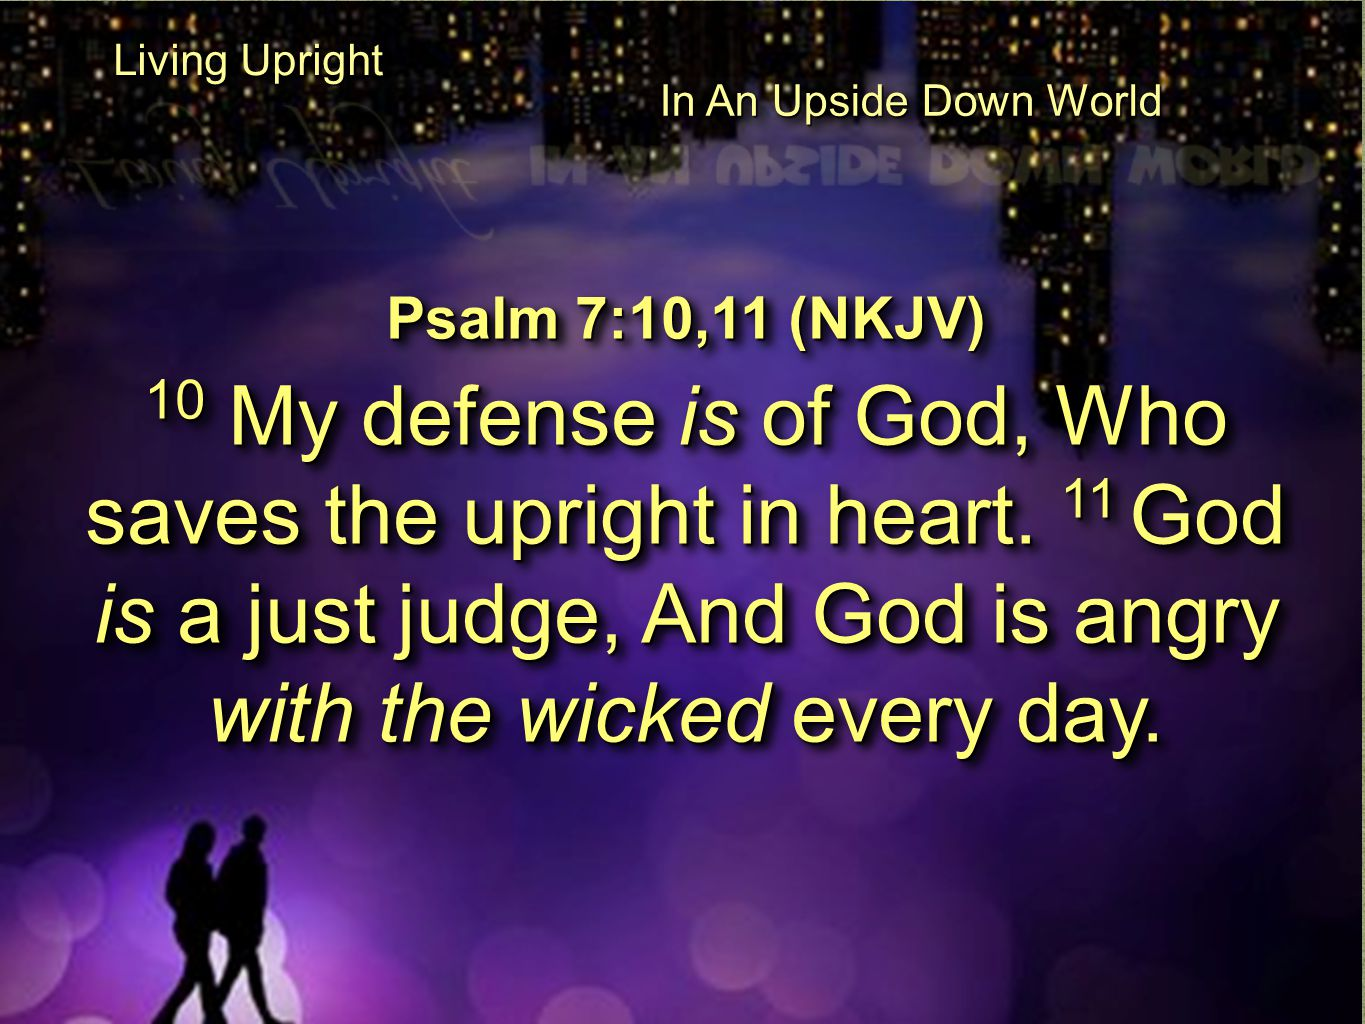 Psalm 7:10,11 (NKJV) 10 My defense is of God, Who saves the upright in heart. 11 God is a just judge, And God is angry with the wicked every day. Psal